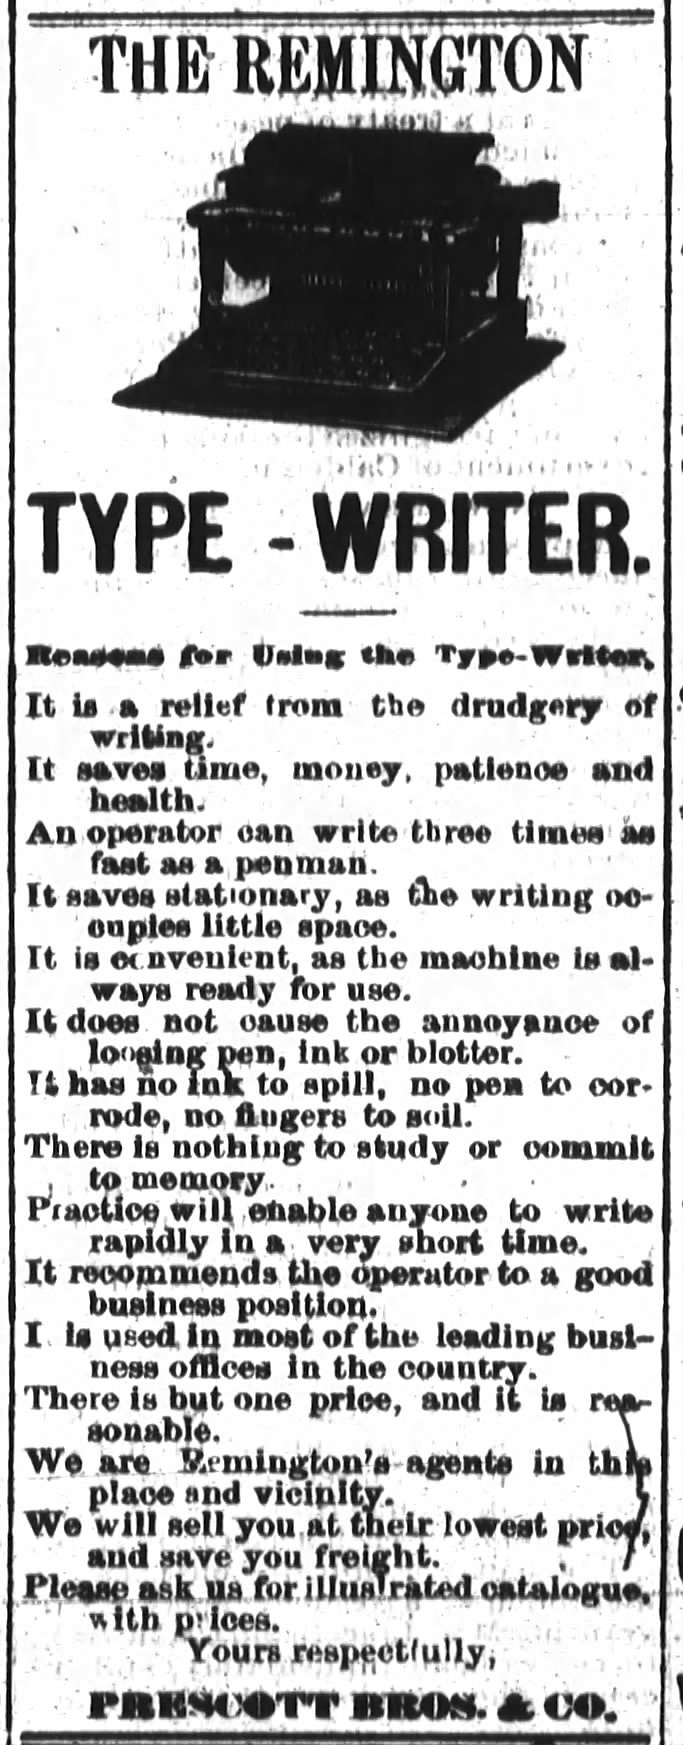 Fort Wayne Daily Gazette - Fort Wayne, Indiana - Jan 22, 1882